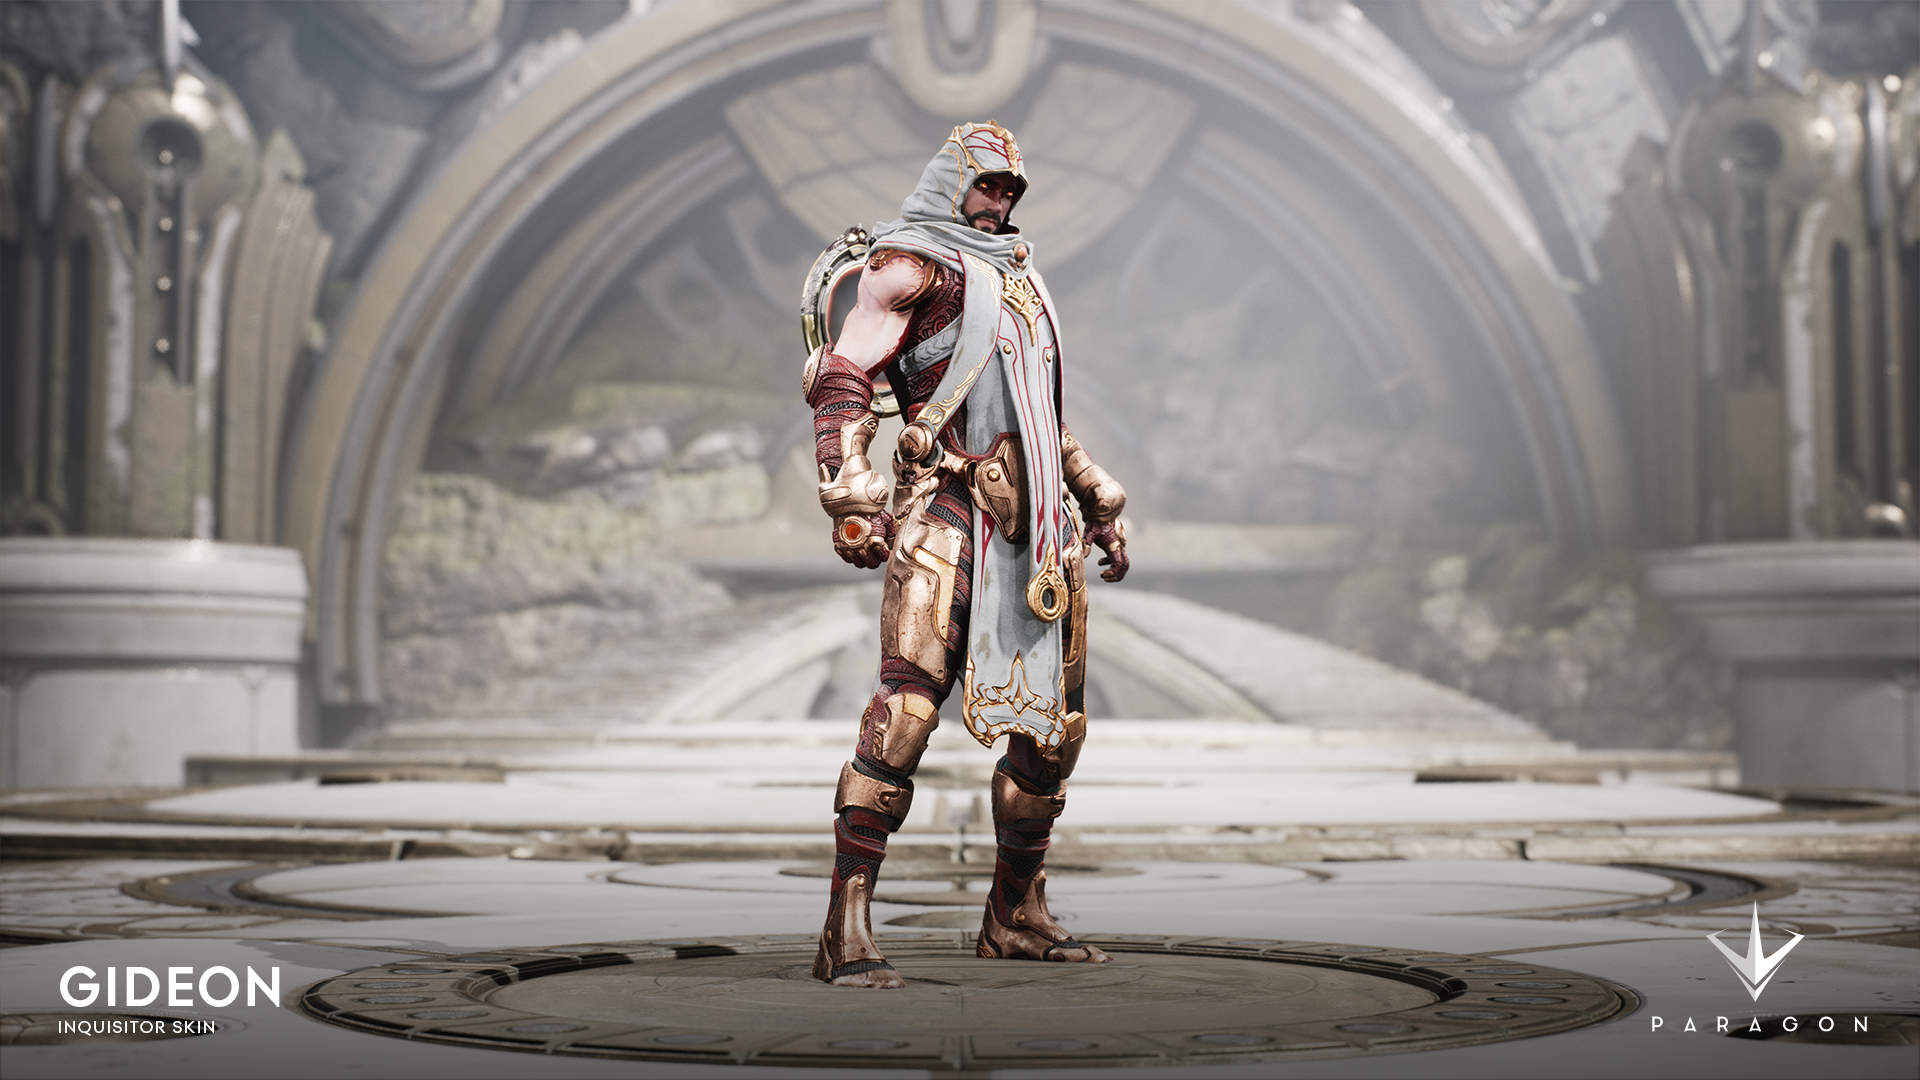 Paragon_Gideon_InquisitorSkin